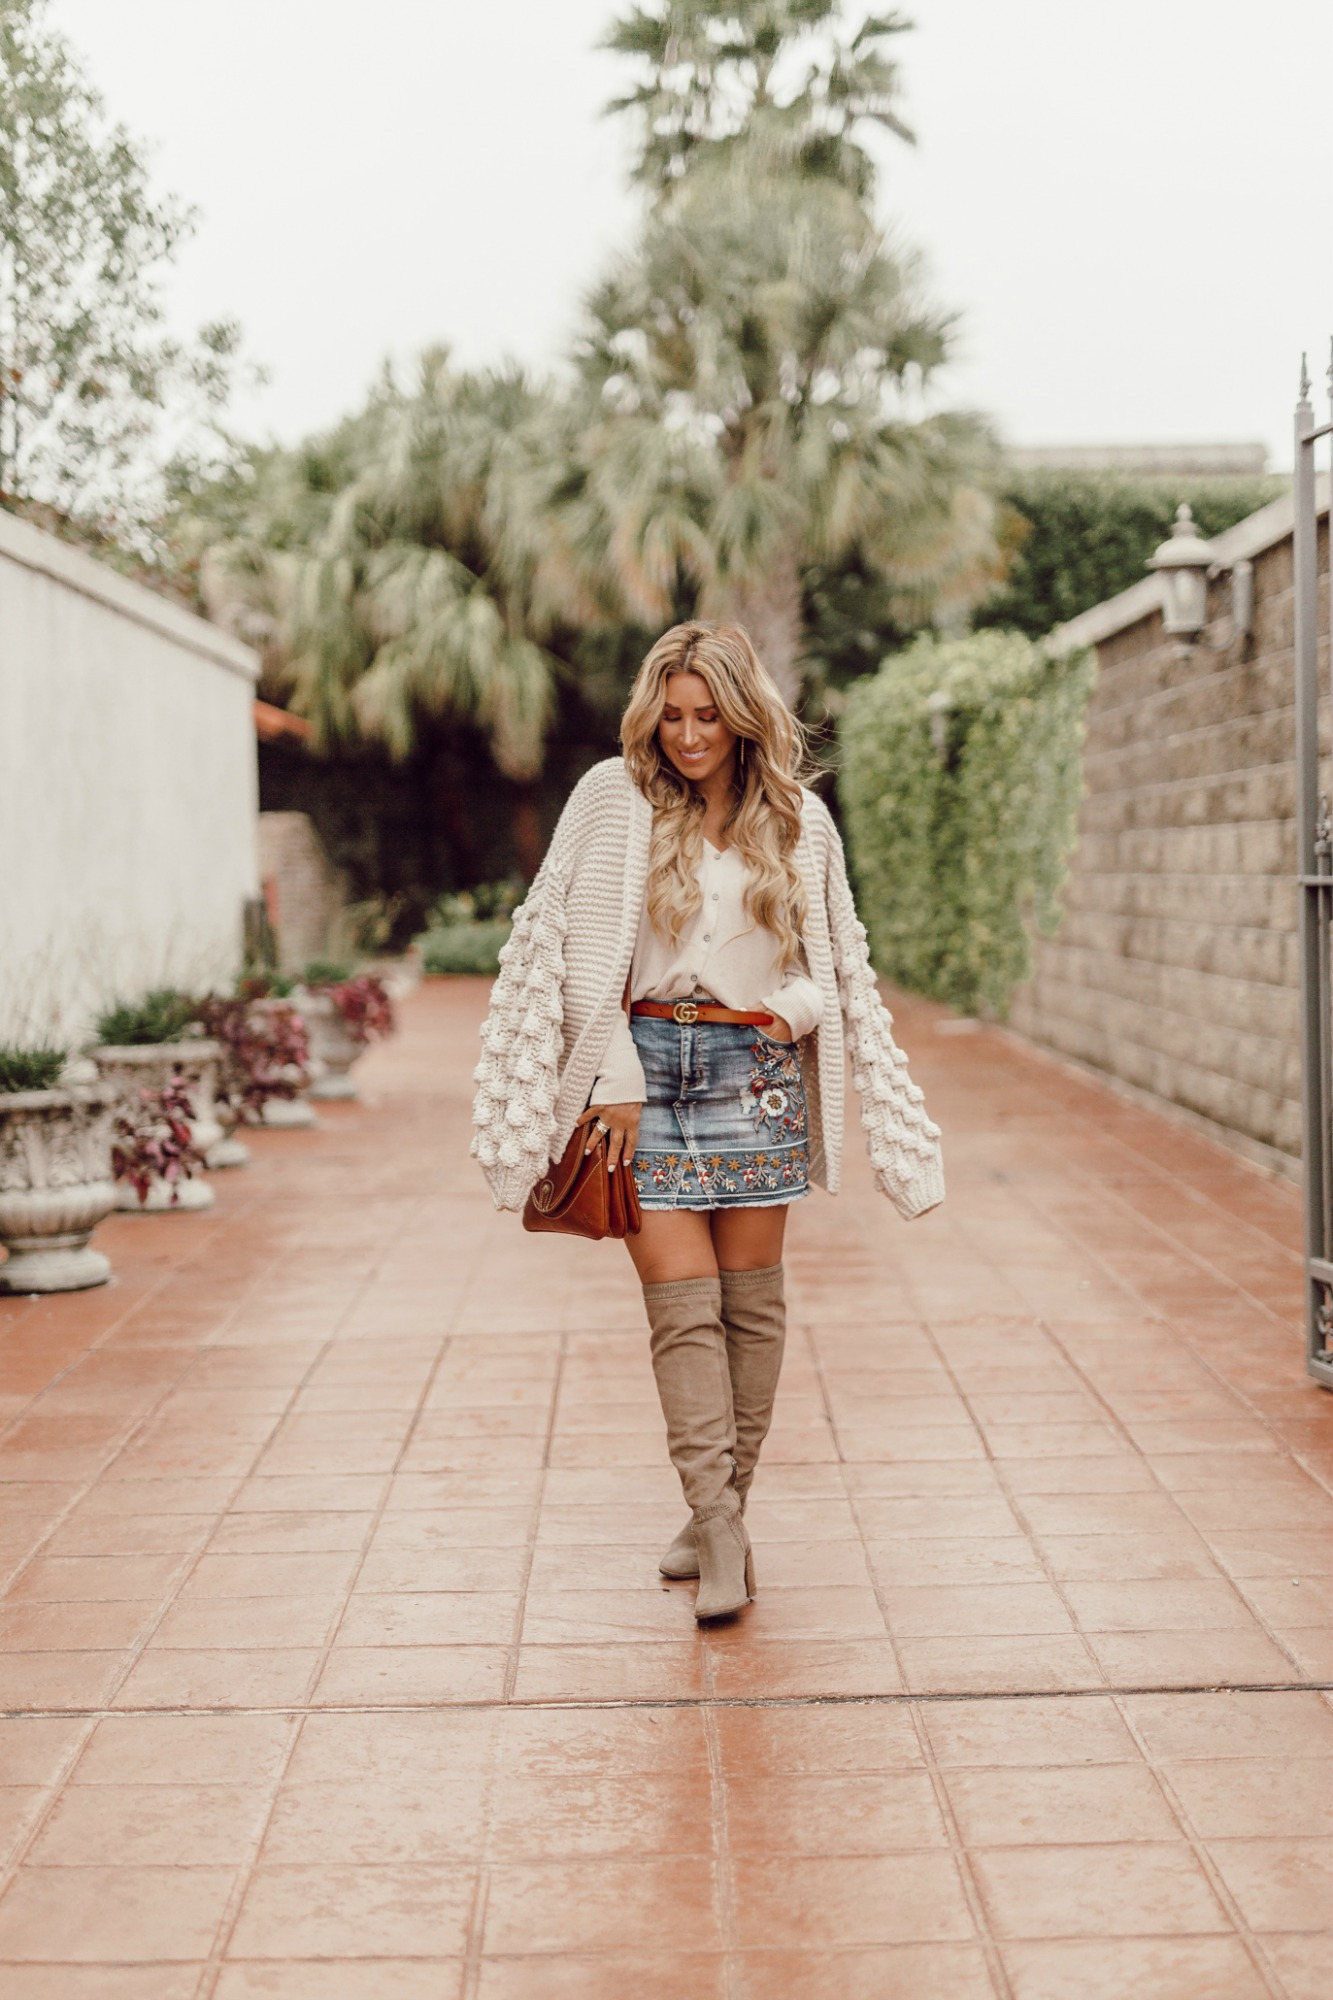 denim skirt fall outfit idea